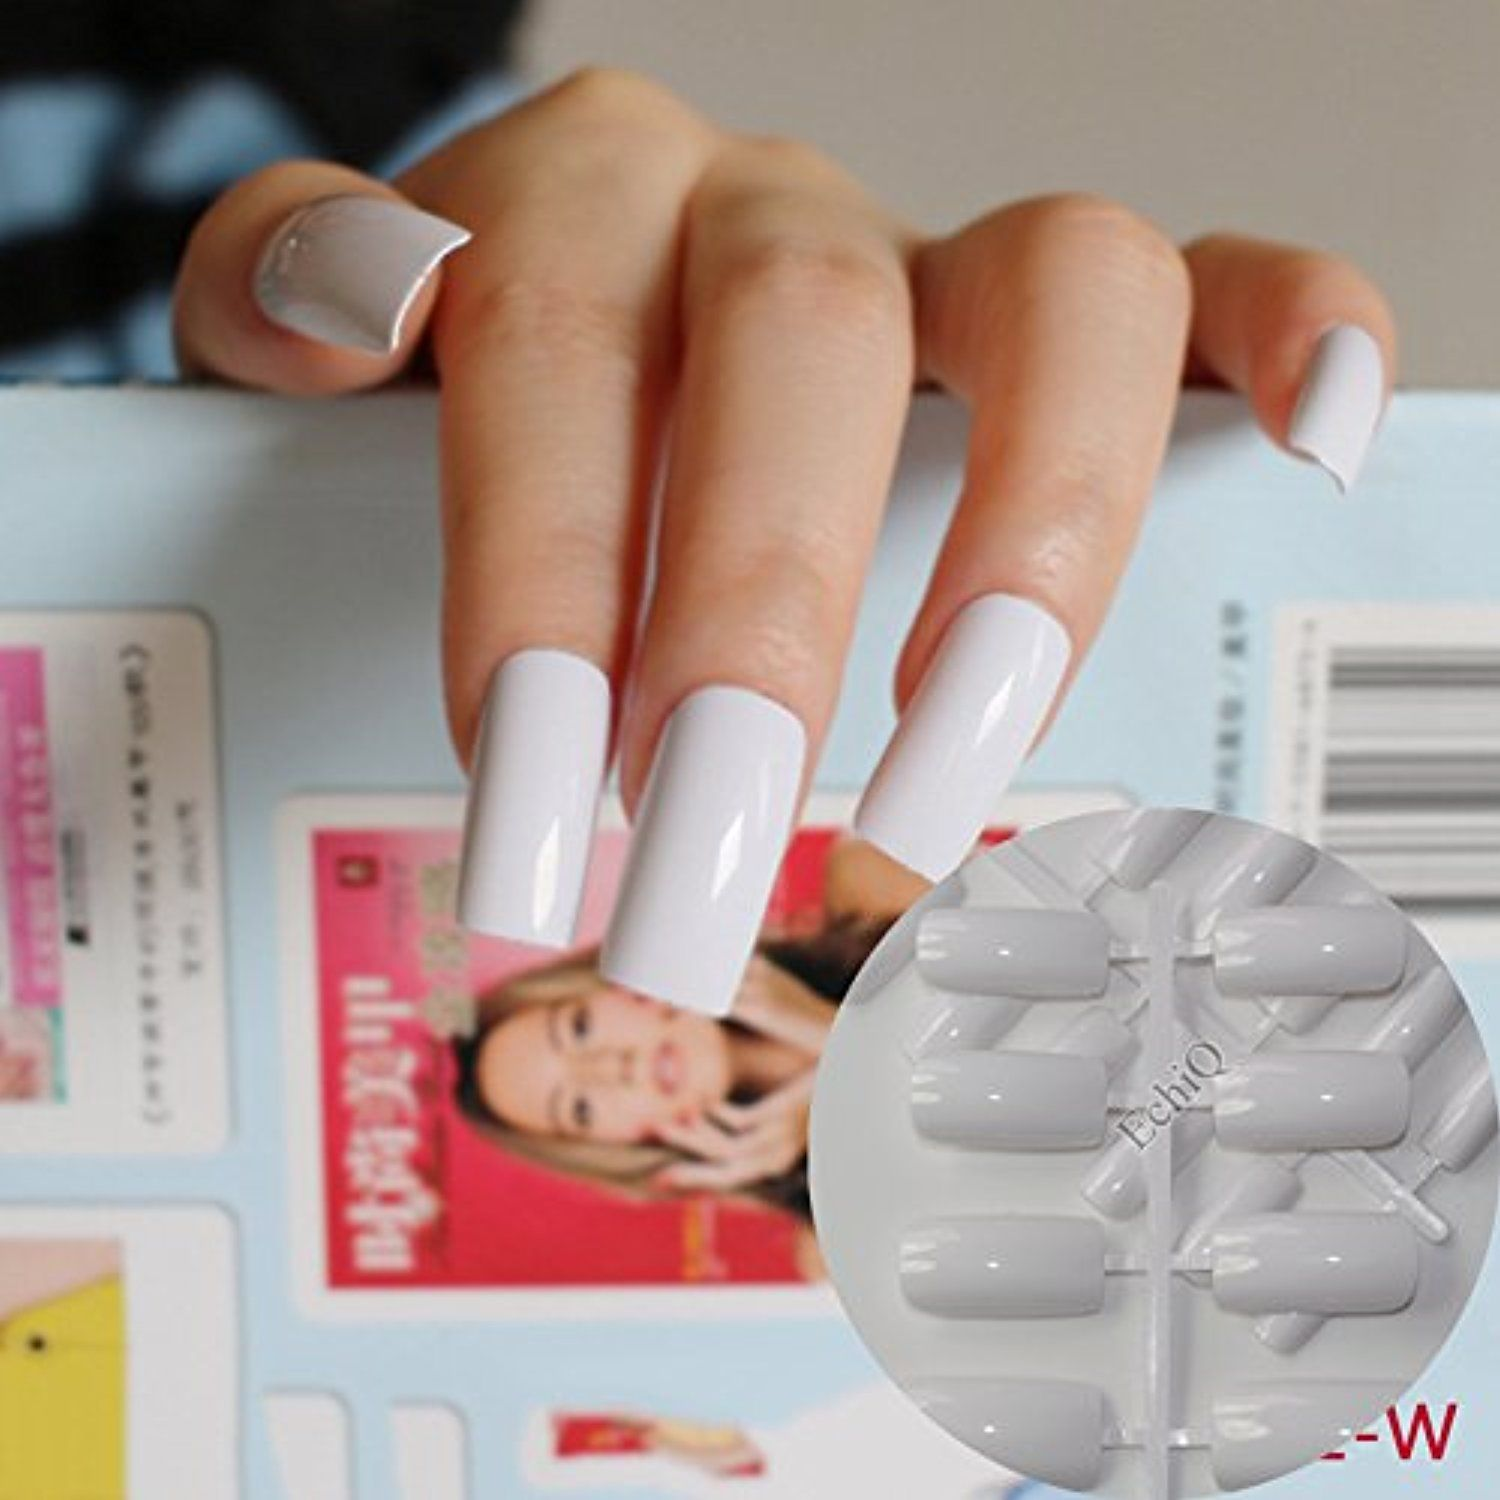 Ultra Long Acrylic Nail Tips White Flat Fake Nails Full Wrap French Kit 24pcs With Display Easy To Use WL You Can Get More Details By Clicking On